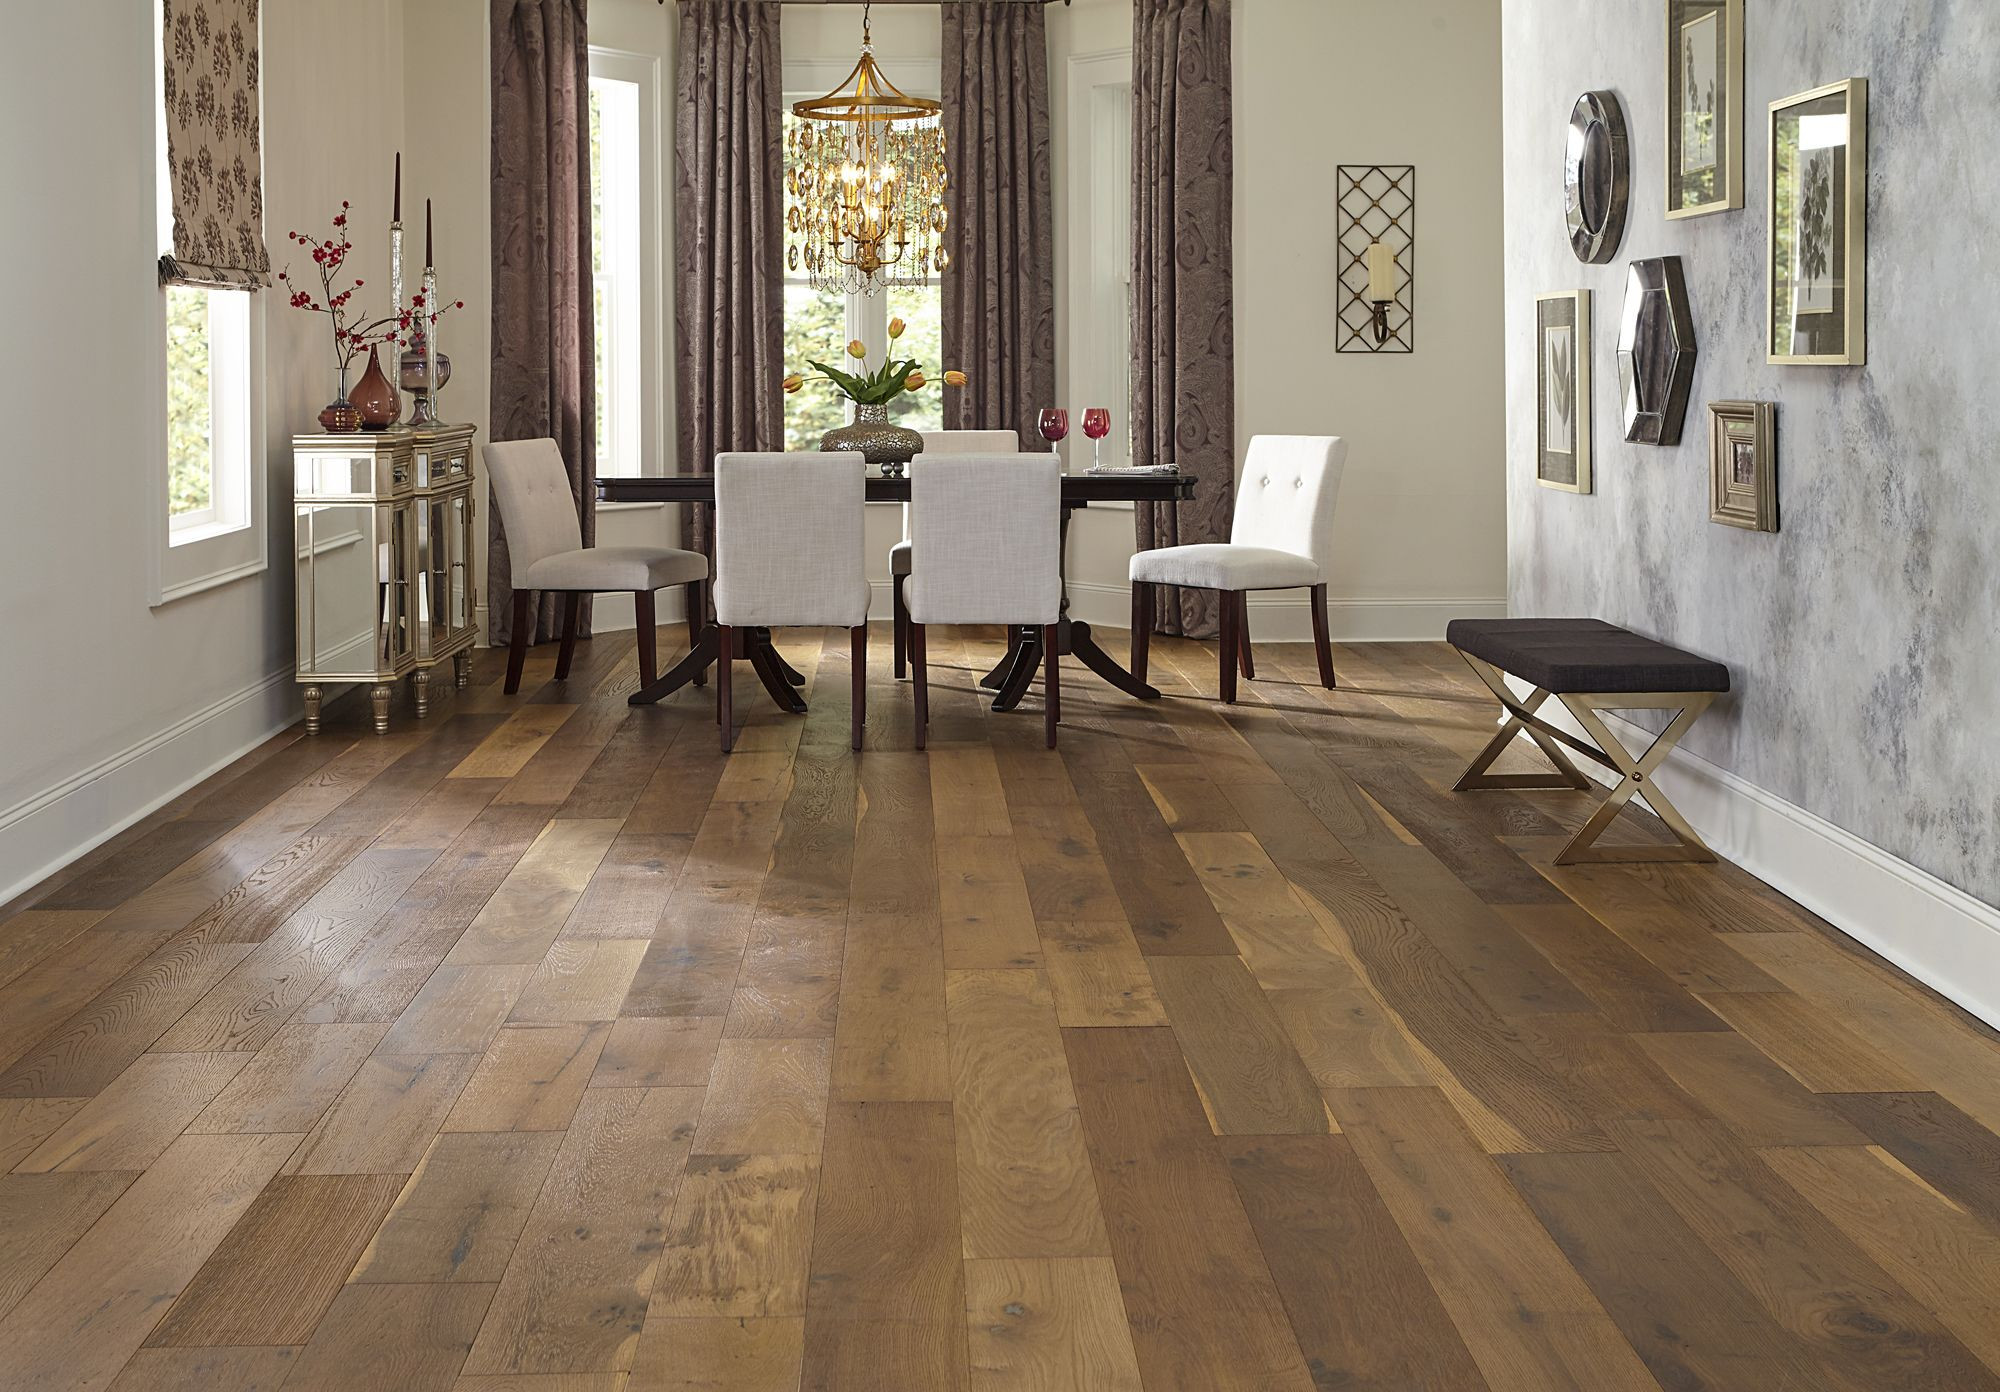 wide plank hardwood flooring price of 7 1 2 wide planks and a rustic look bellawood willow manor oak has within 7 1 2 wide planks and a rustic look bellawood willow manor oak has a storied old world appearance